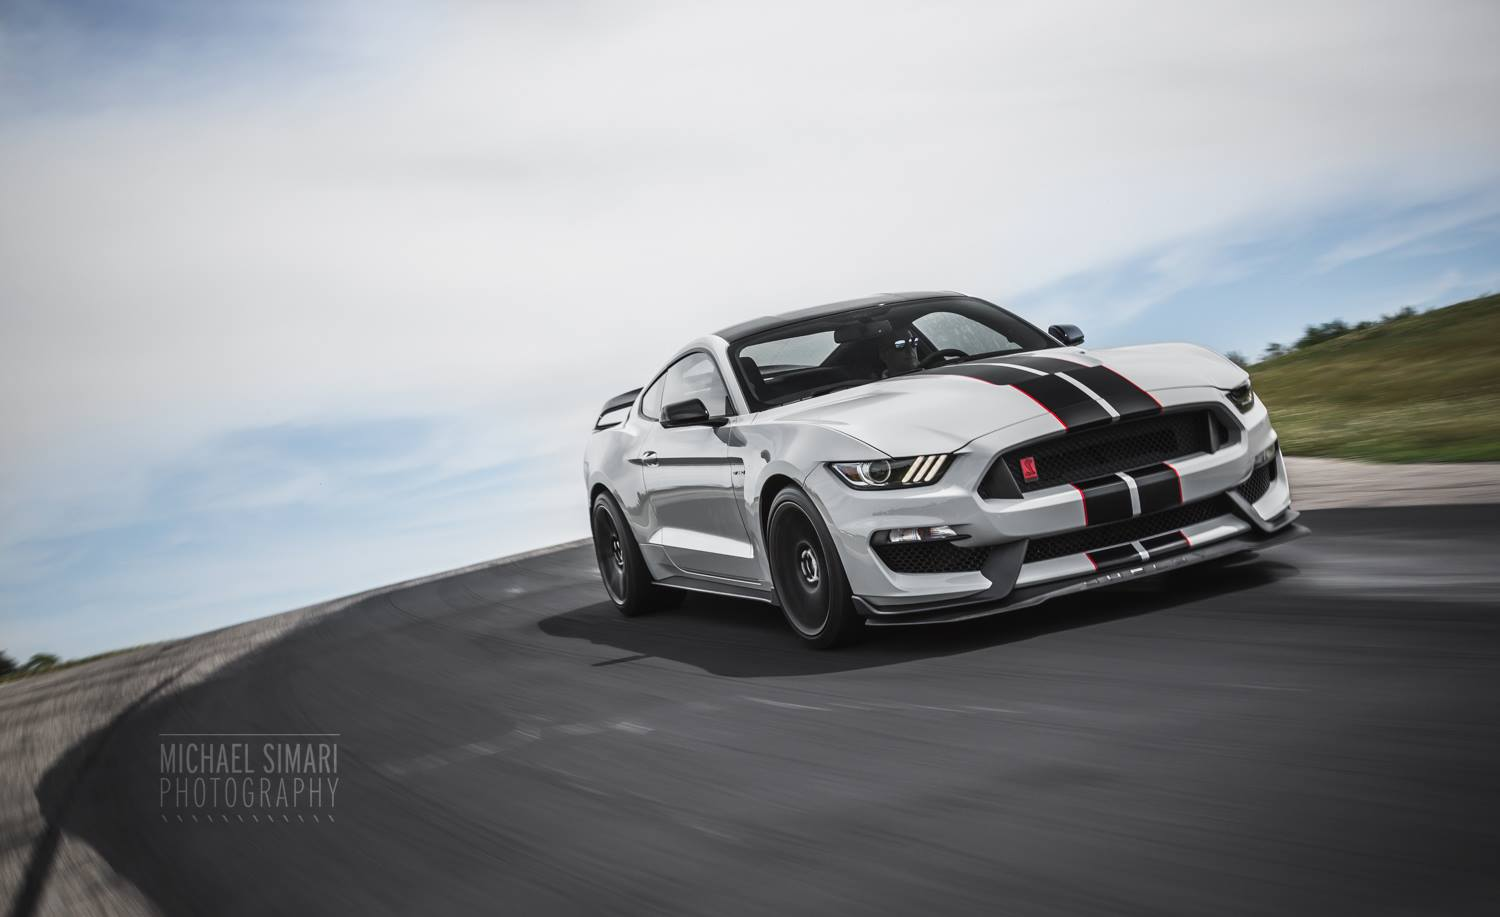 Gt350R For Sale >> Photo Of The Day: Stunning 2016 Ford Mustang Shelby GT350R ...